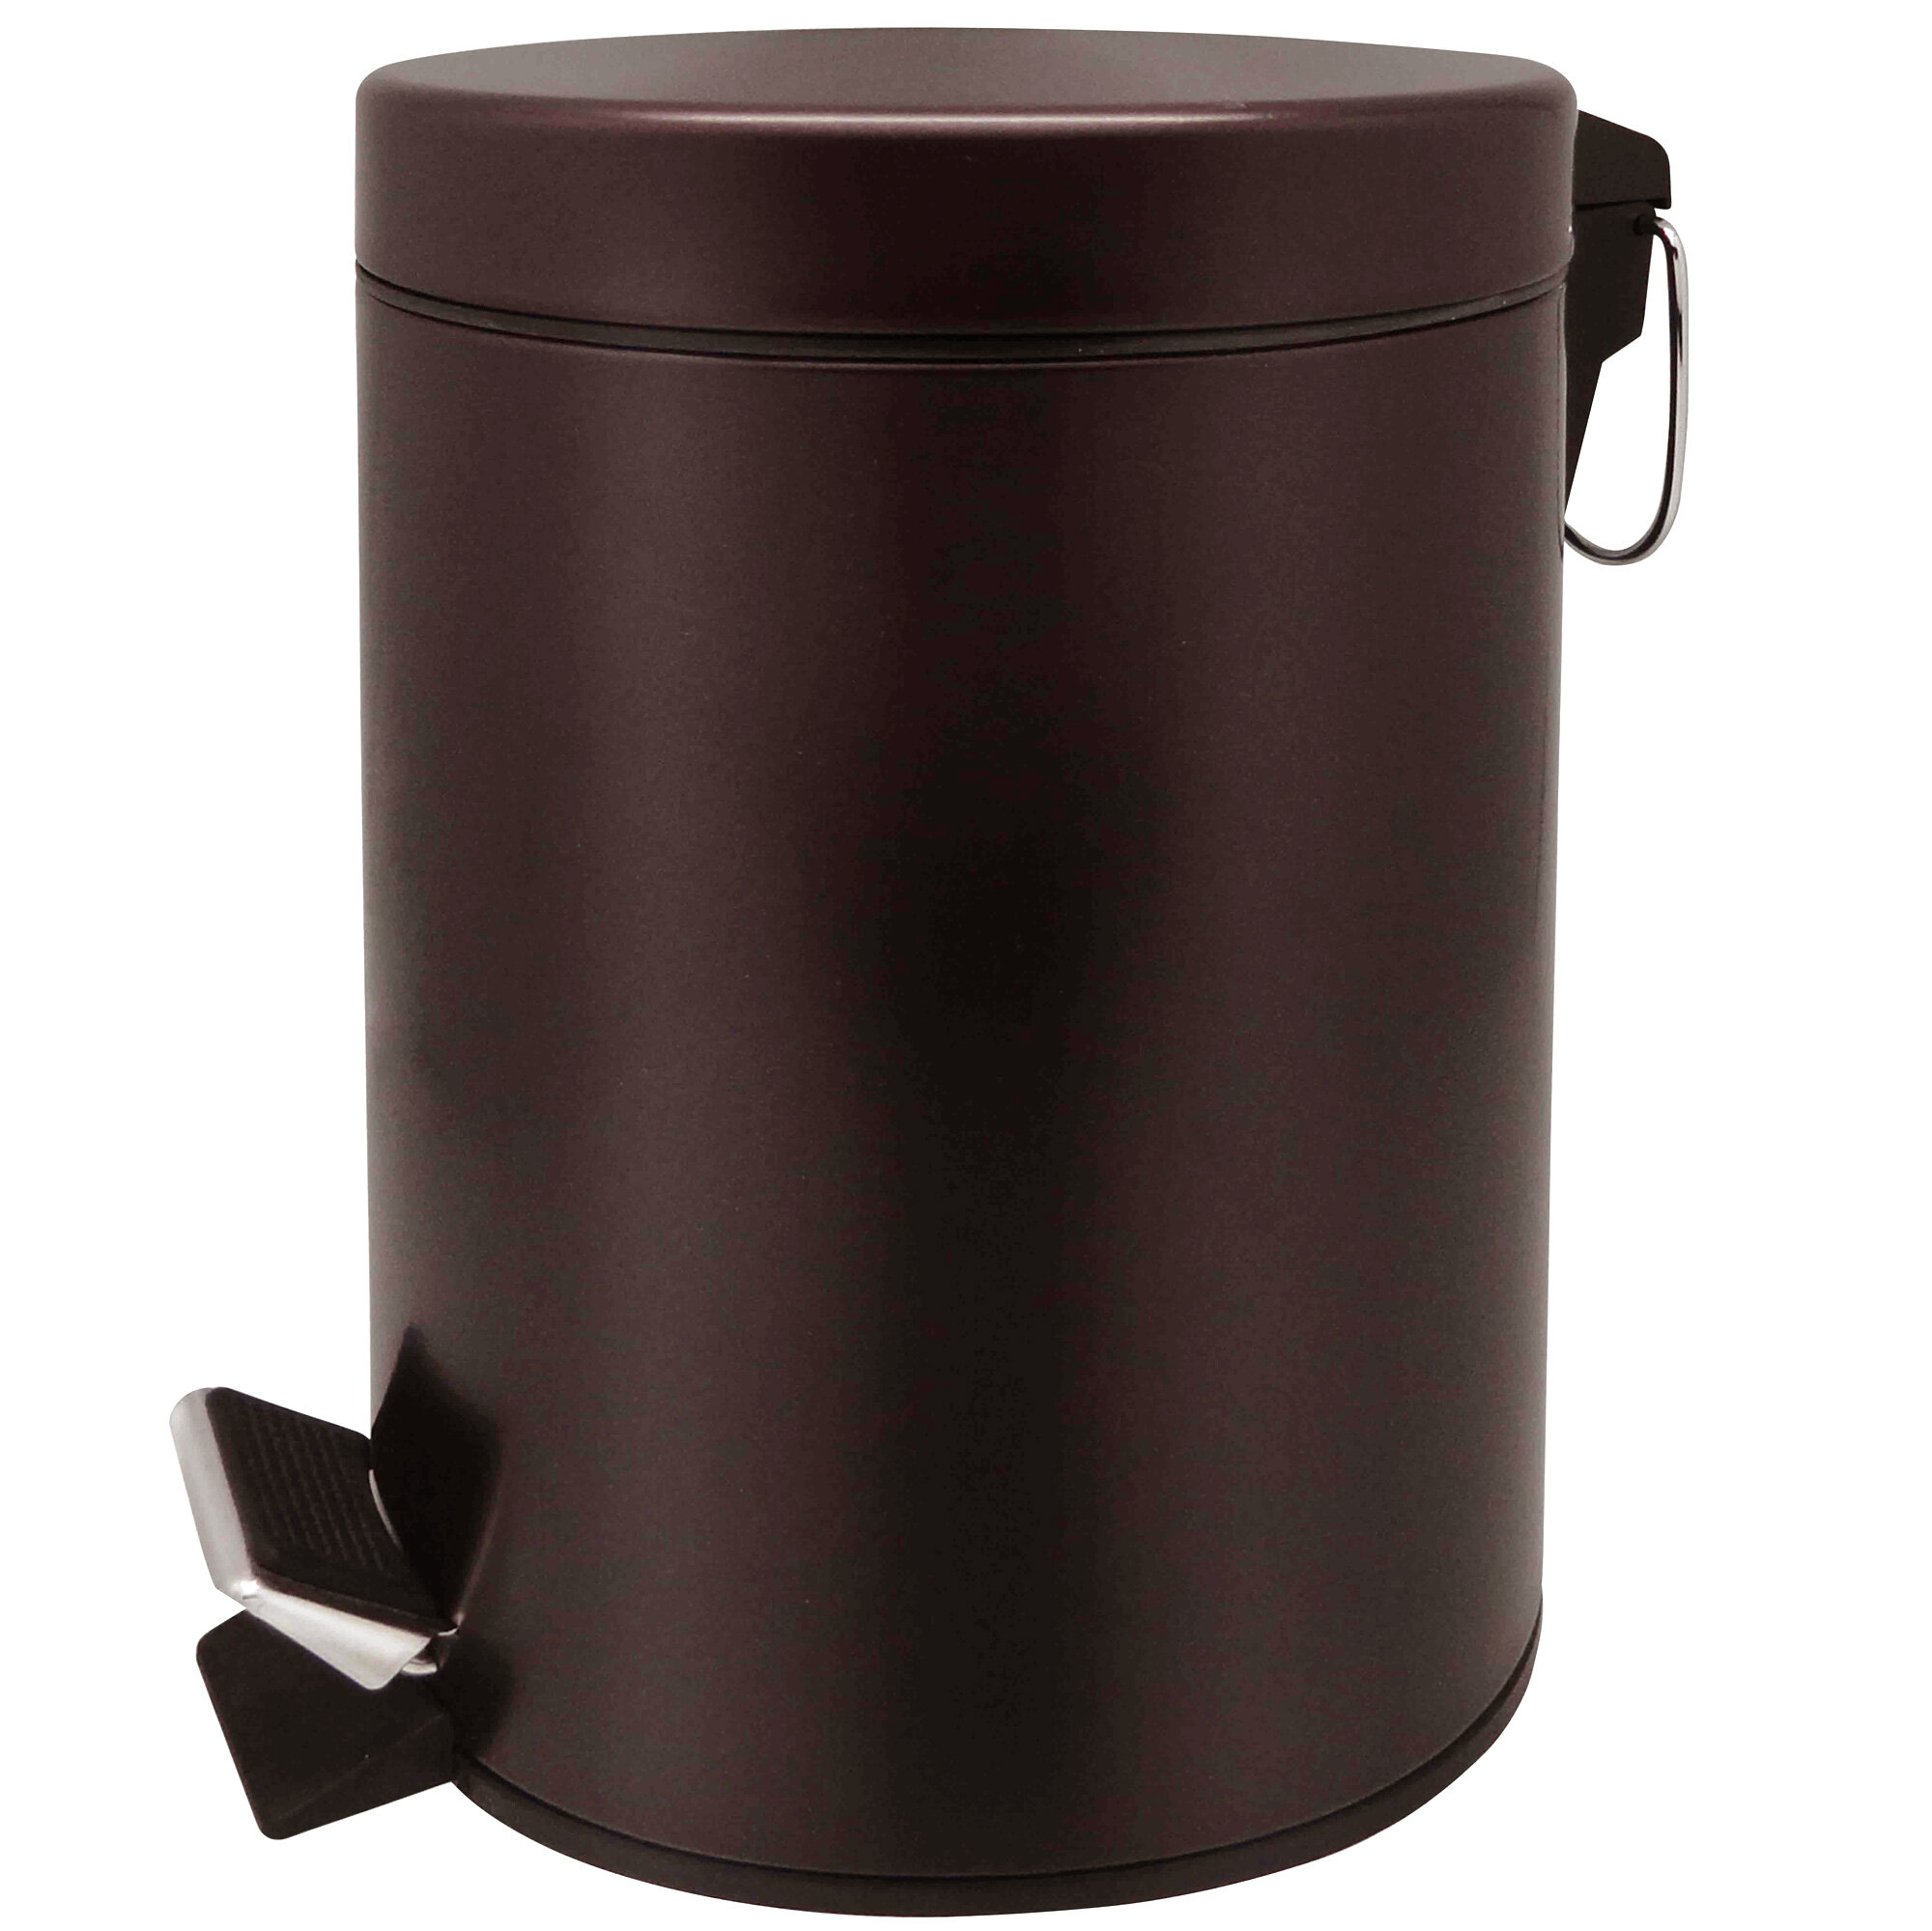 Sweet Home Collection Home Basics Bronze Tone Steel 5 Litre